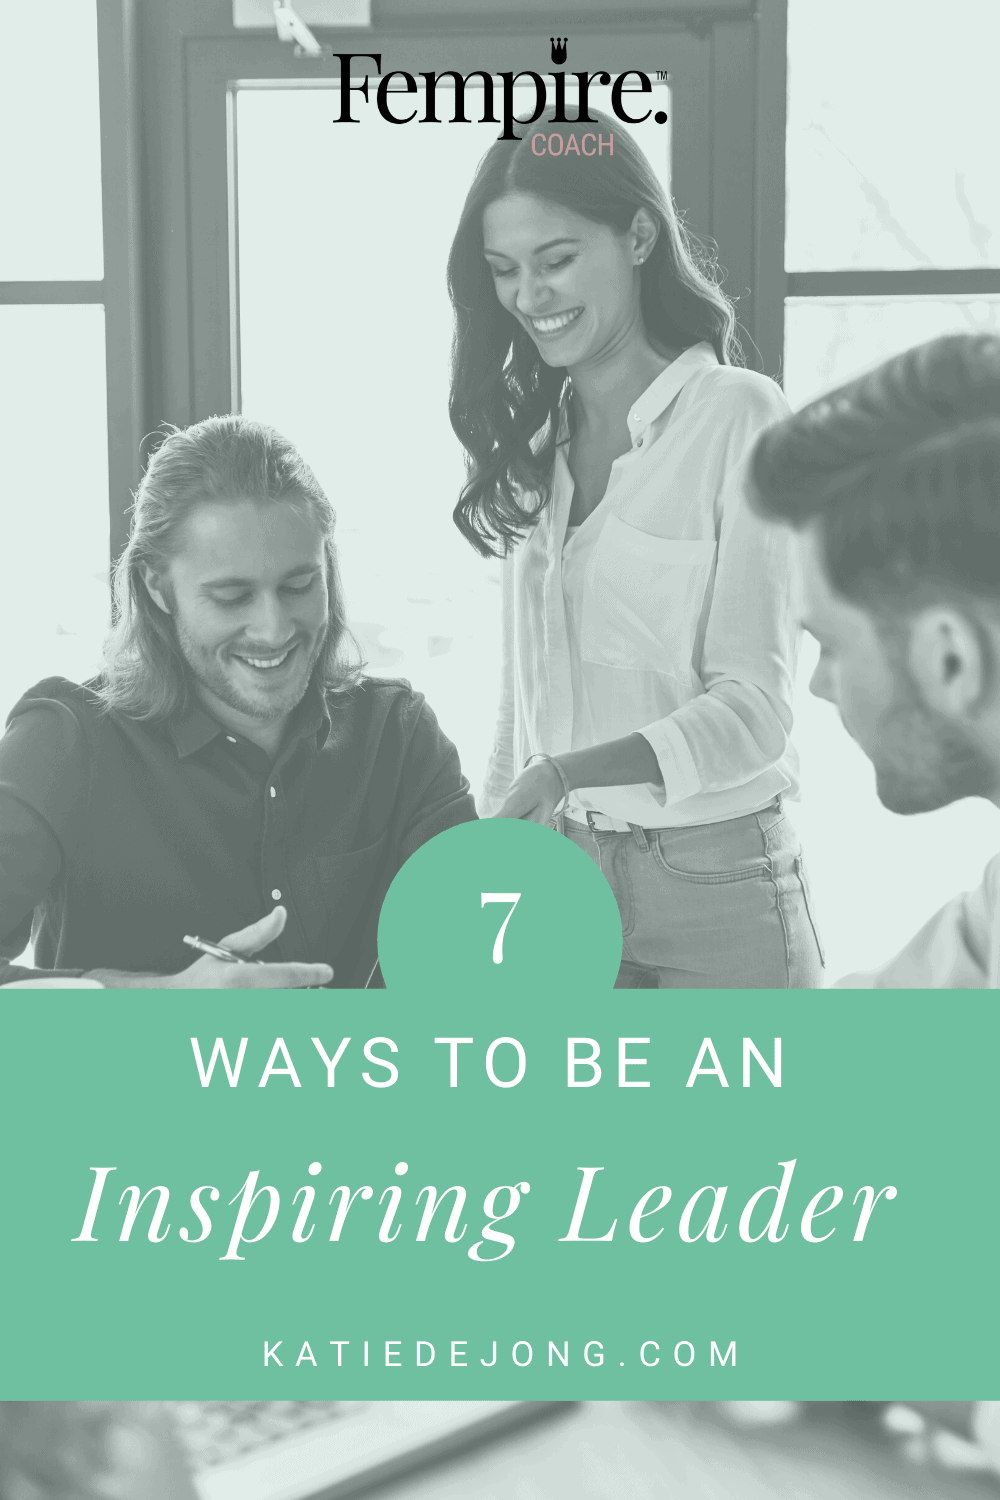 A huge study of more than 800 businesses showed that there are four essential qualities of a great leader. Read on to discover what they are! #leadership #smallbusiness #fempire #womeninbusiness #successmindset #leaders #businesscoach #businesscoachforwomen